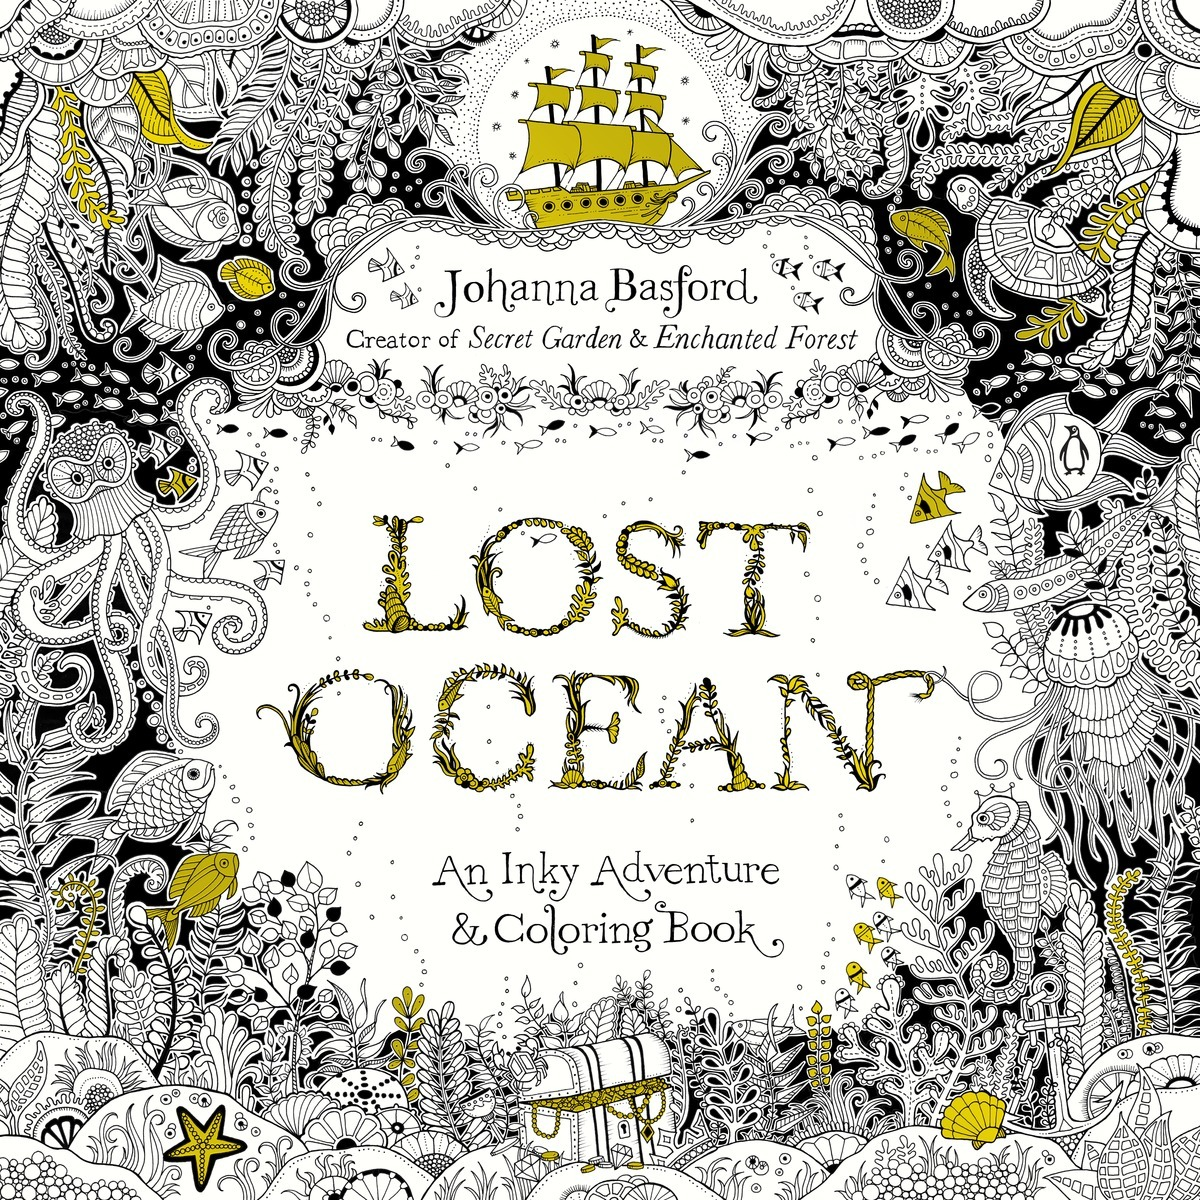 Under the sea coloring book for adults - Lost Ocean An Inky Adventure And Coloring Book For Adults By Johanna Basford Reviews Discussion Bookclubs Lists